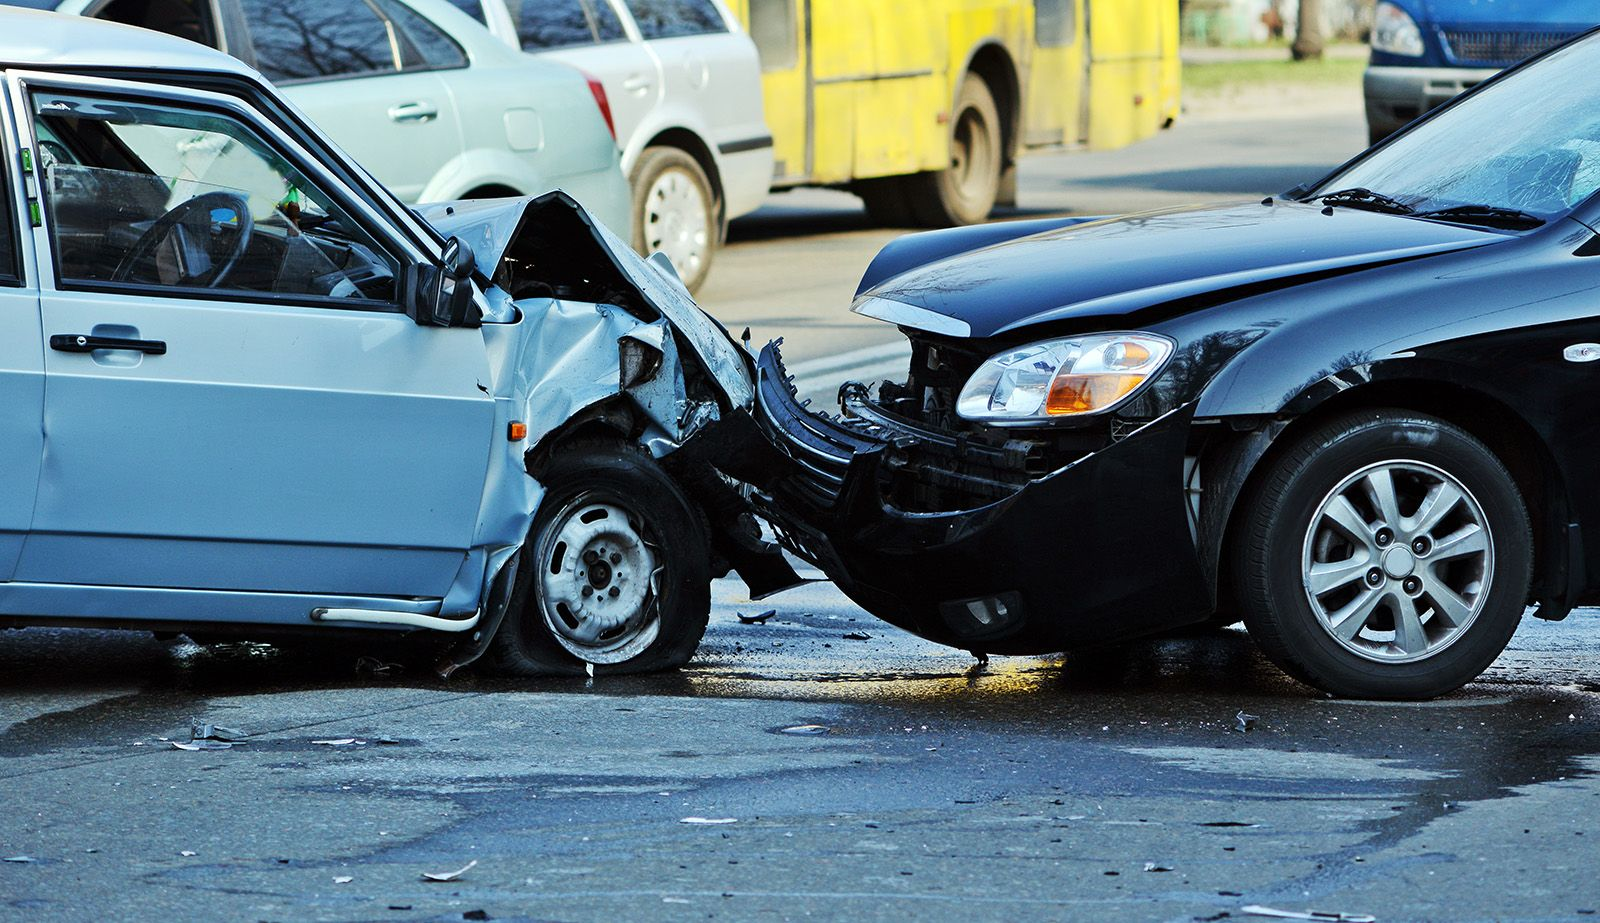 A head-on auto accident